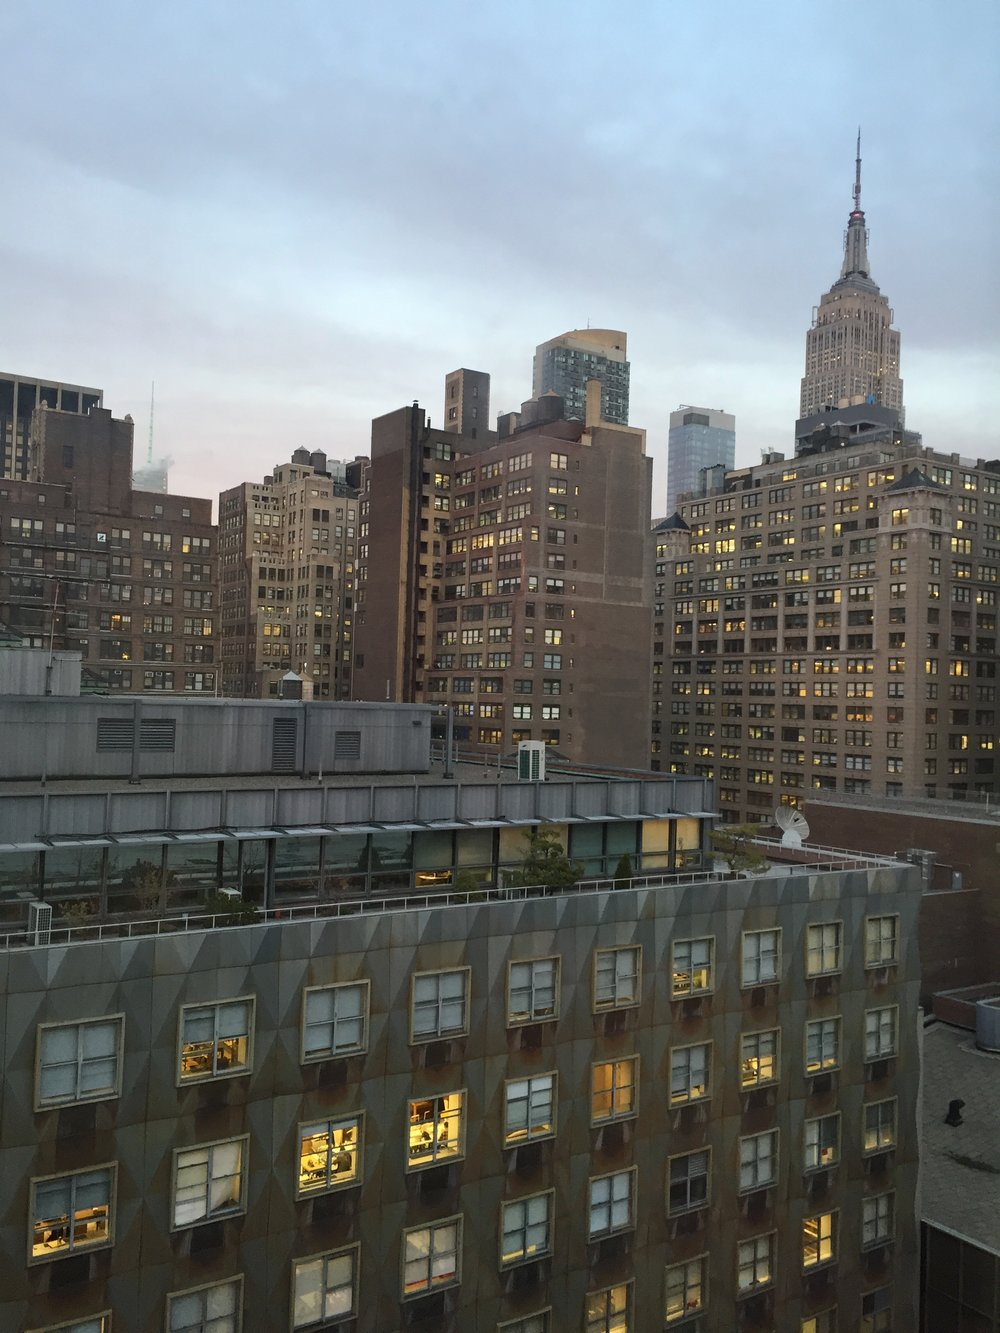 My view from my dorm room.